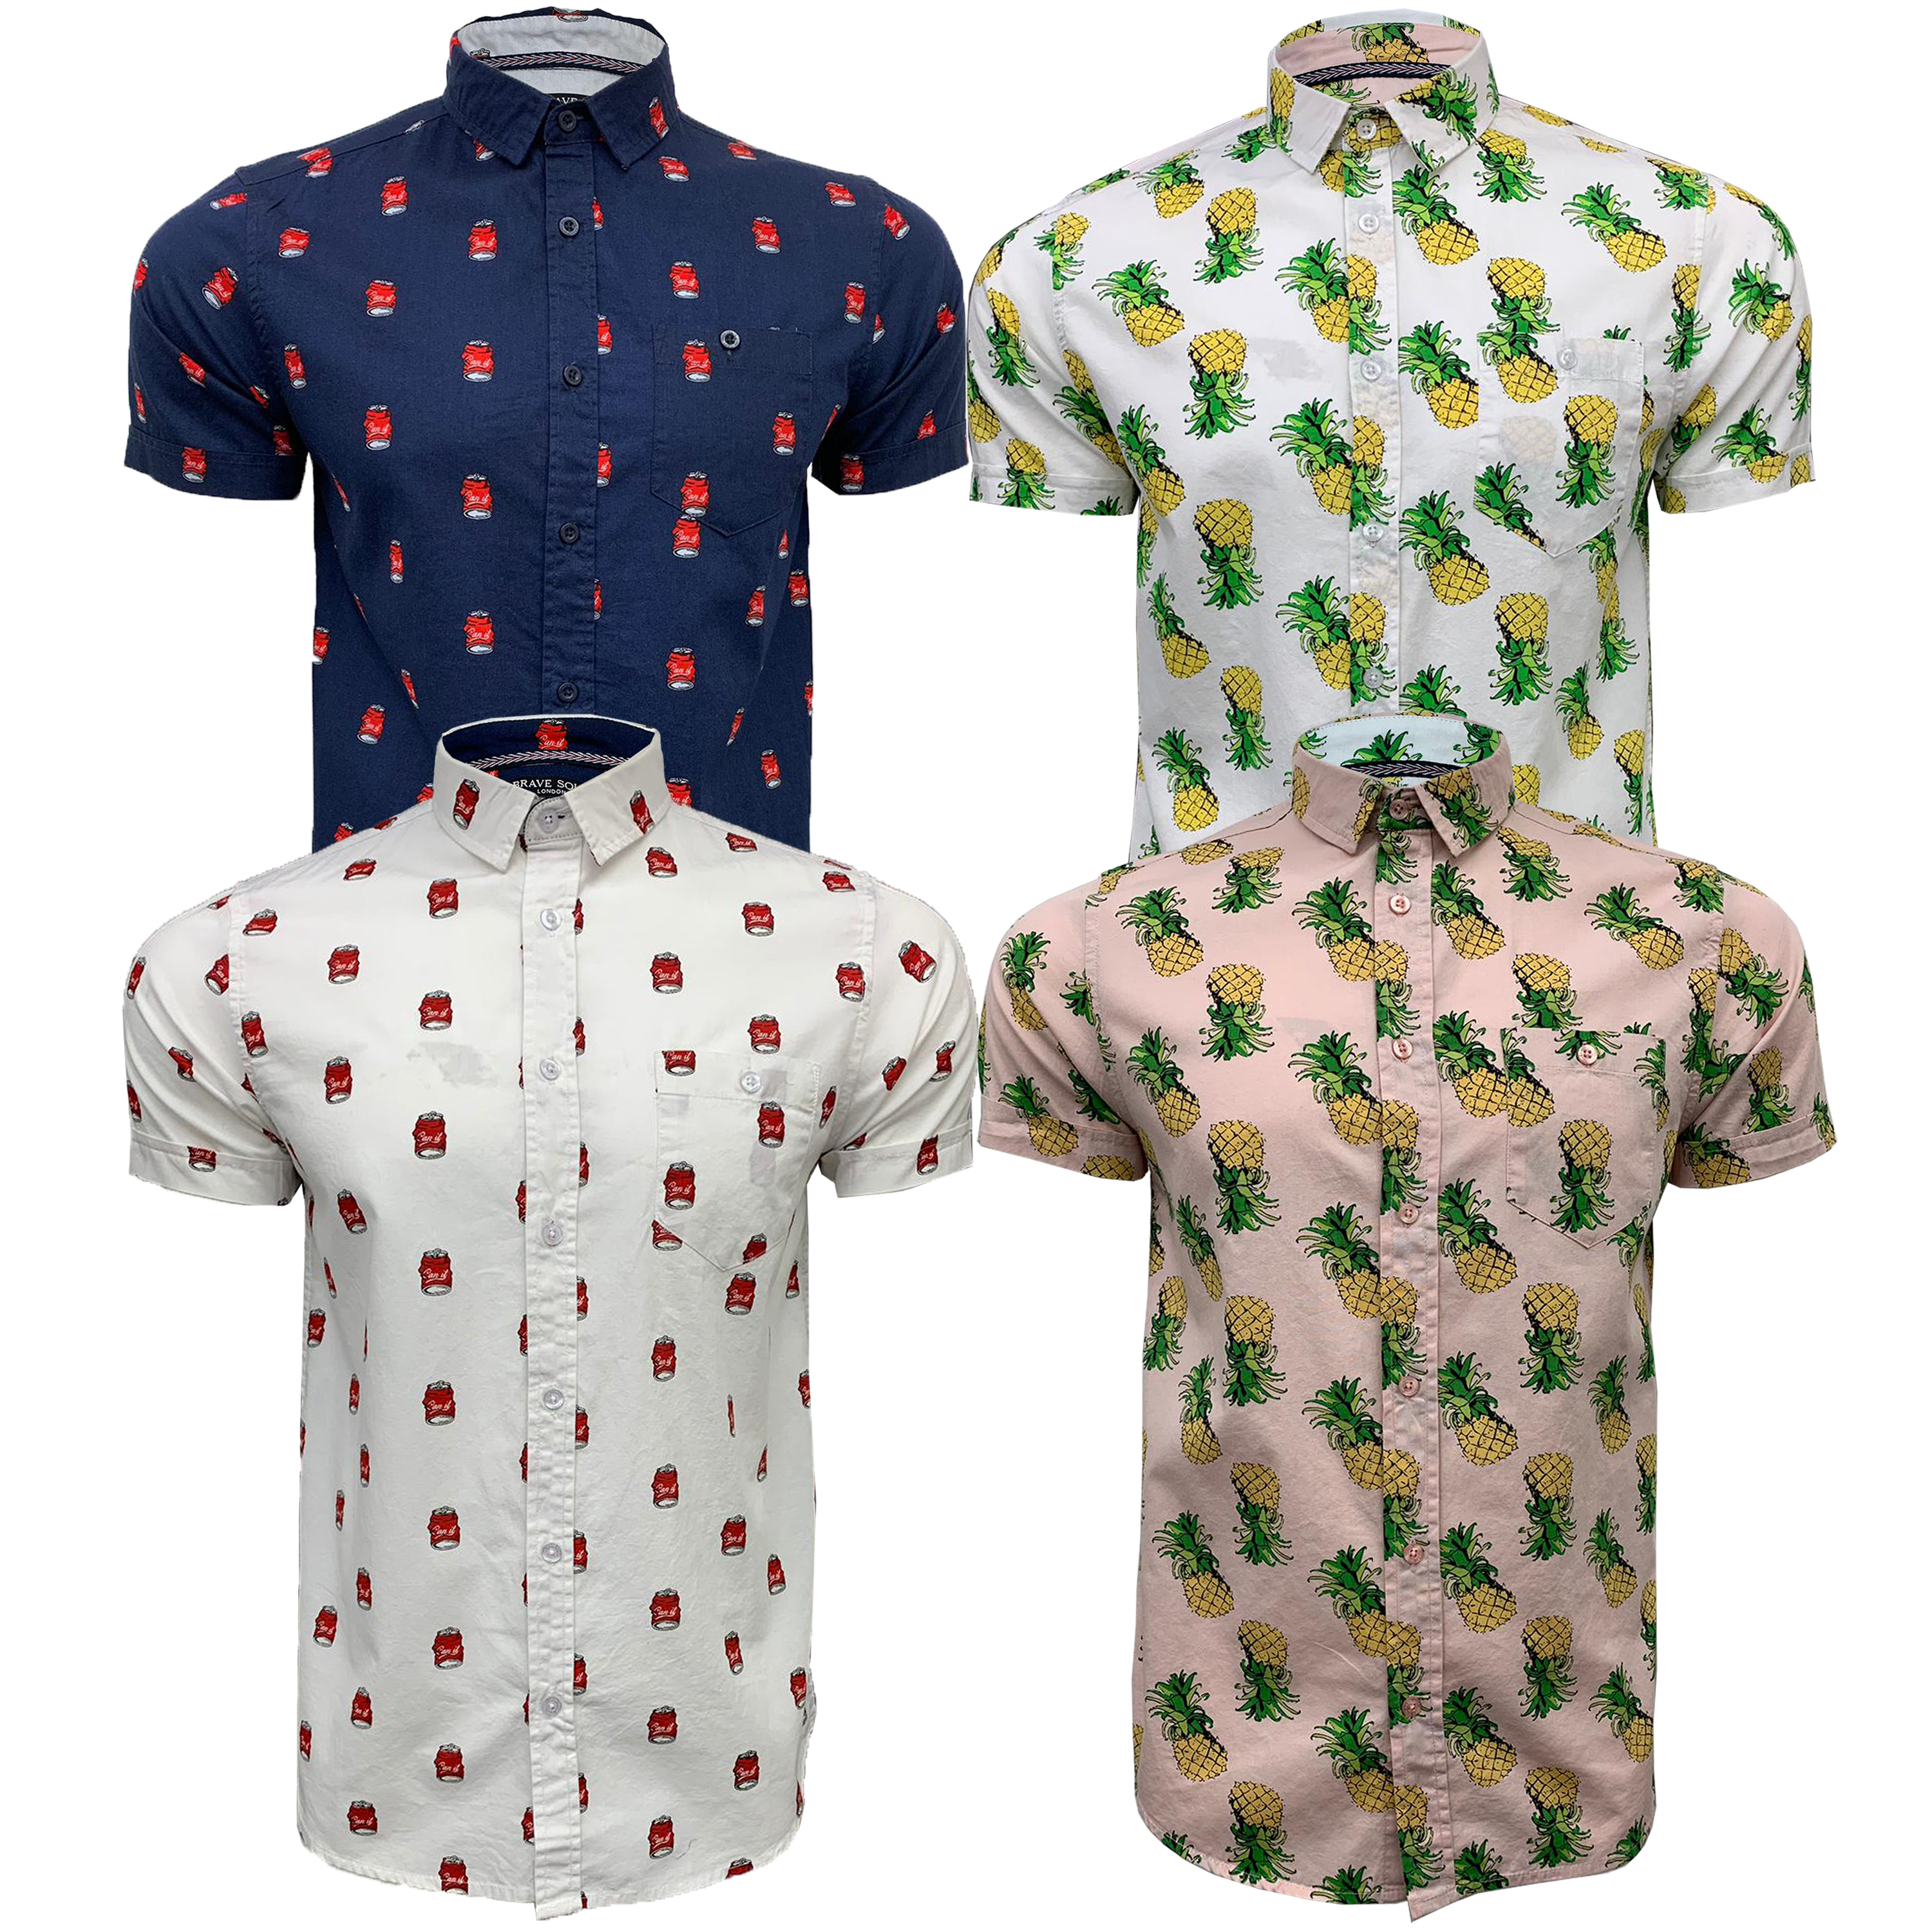 Mens-Cotton-Shirt-Brave-Soul-Pineapple-Can-Printed-Short-Sleeved-Casual-Summer thumbnail 4